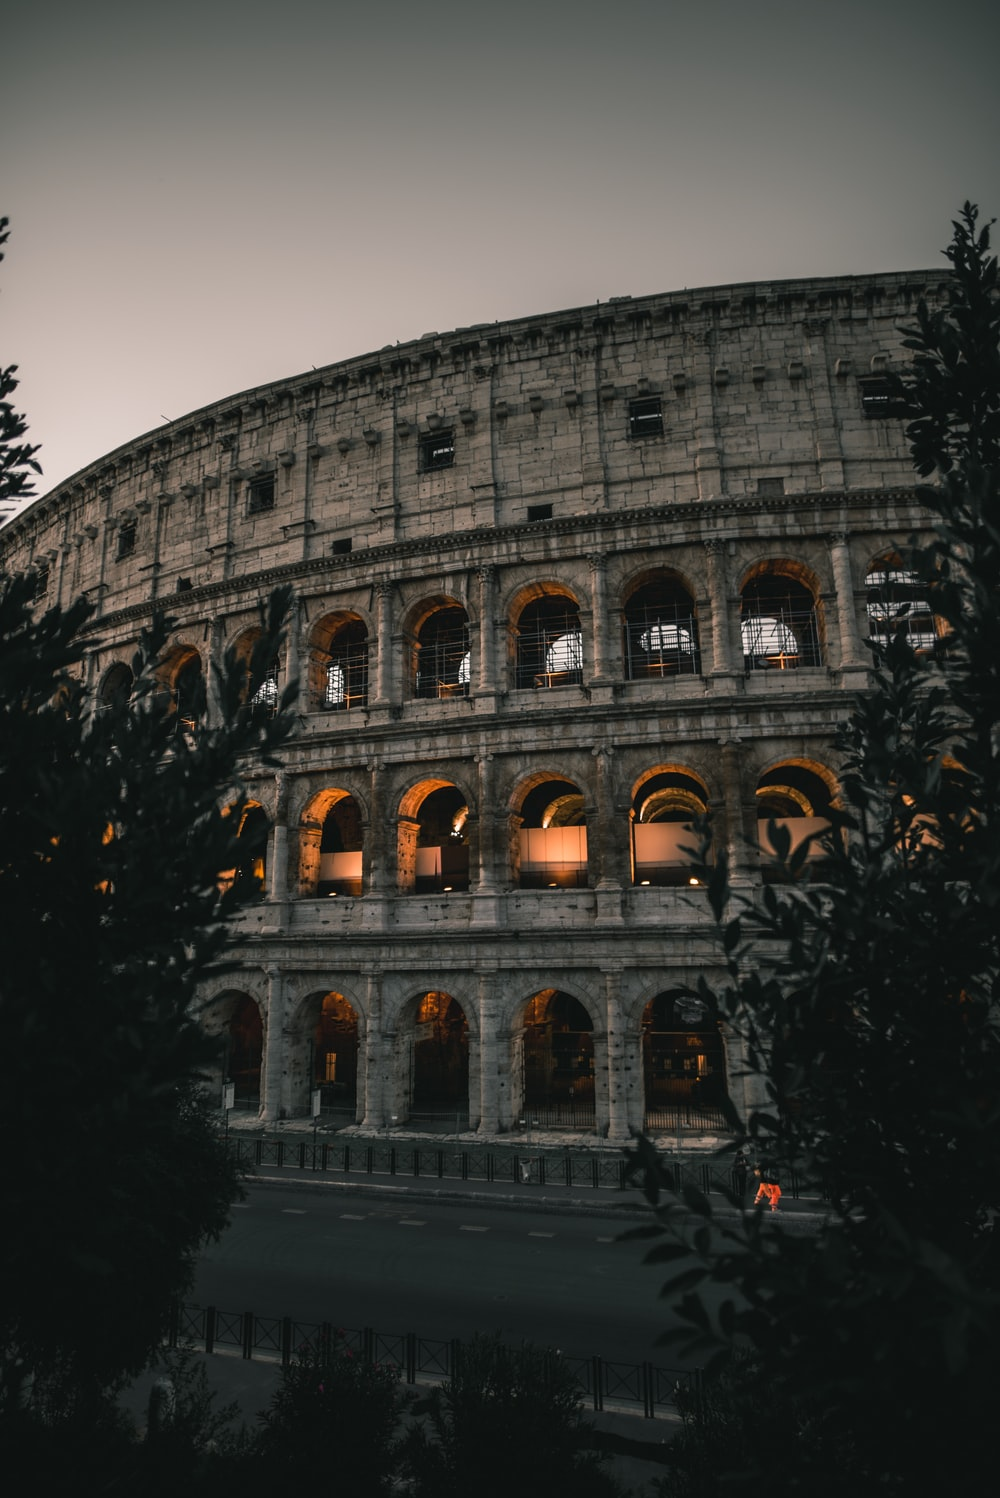 Colosseum of Rome during nighttime